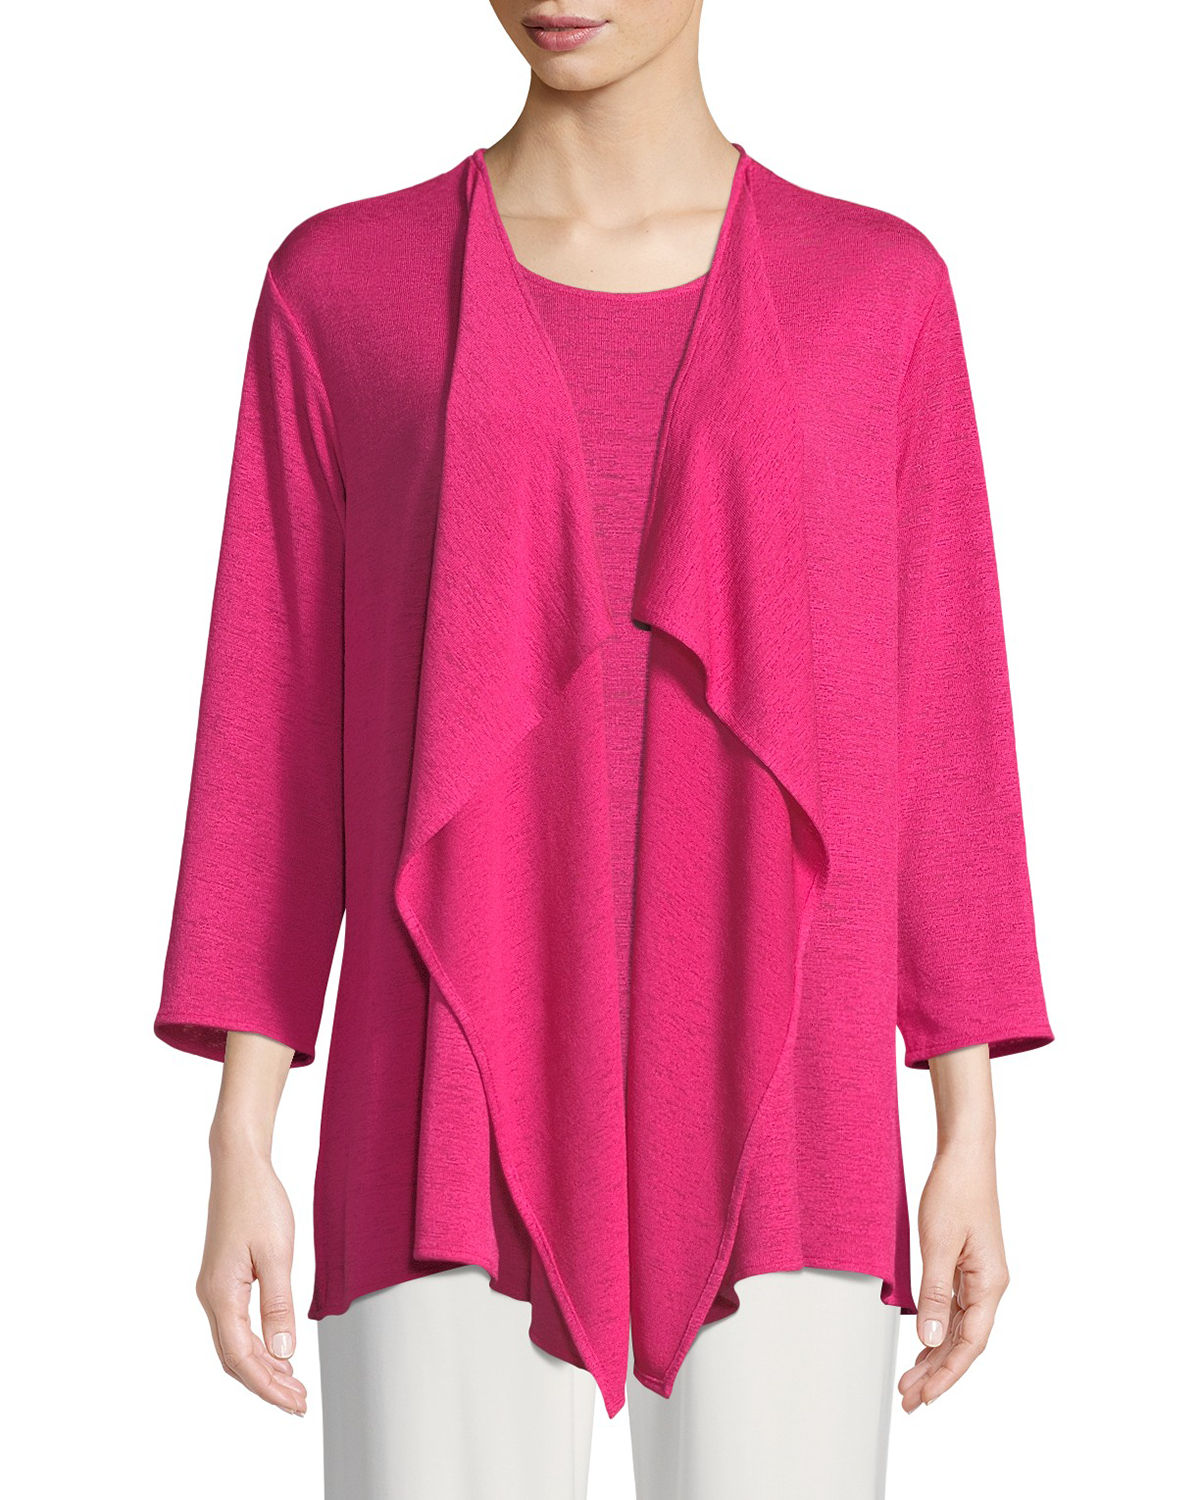 Gauze Knit Draped Cardigan, Plus Size